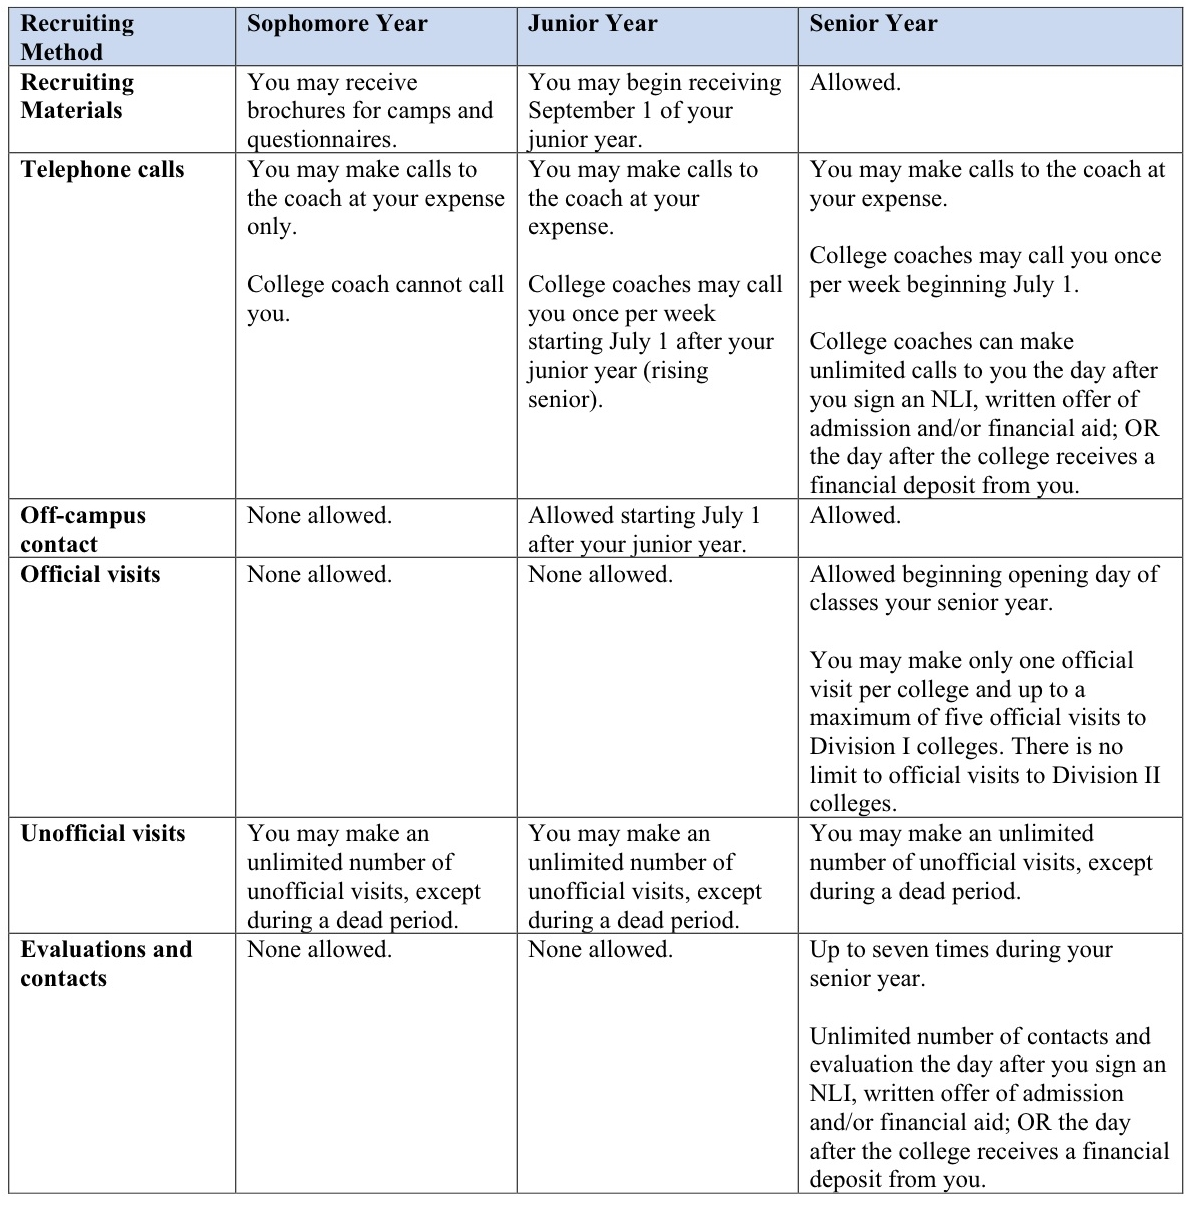 Recruiting Rules Summary for Soccer - Division I.jpg